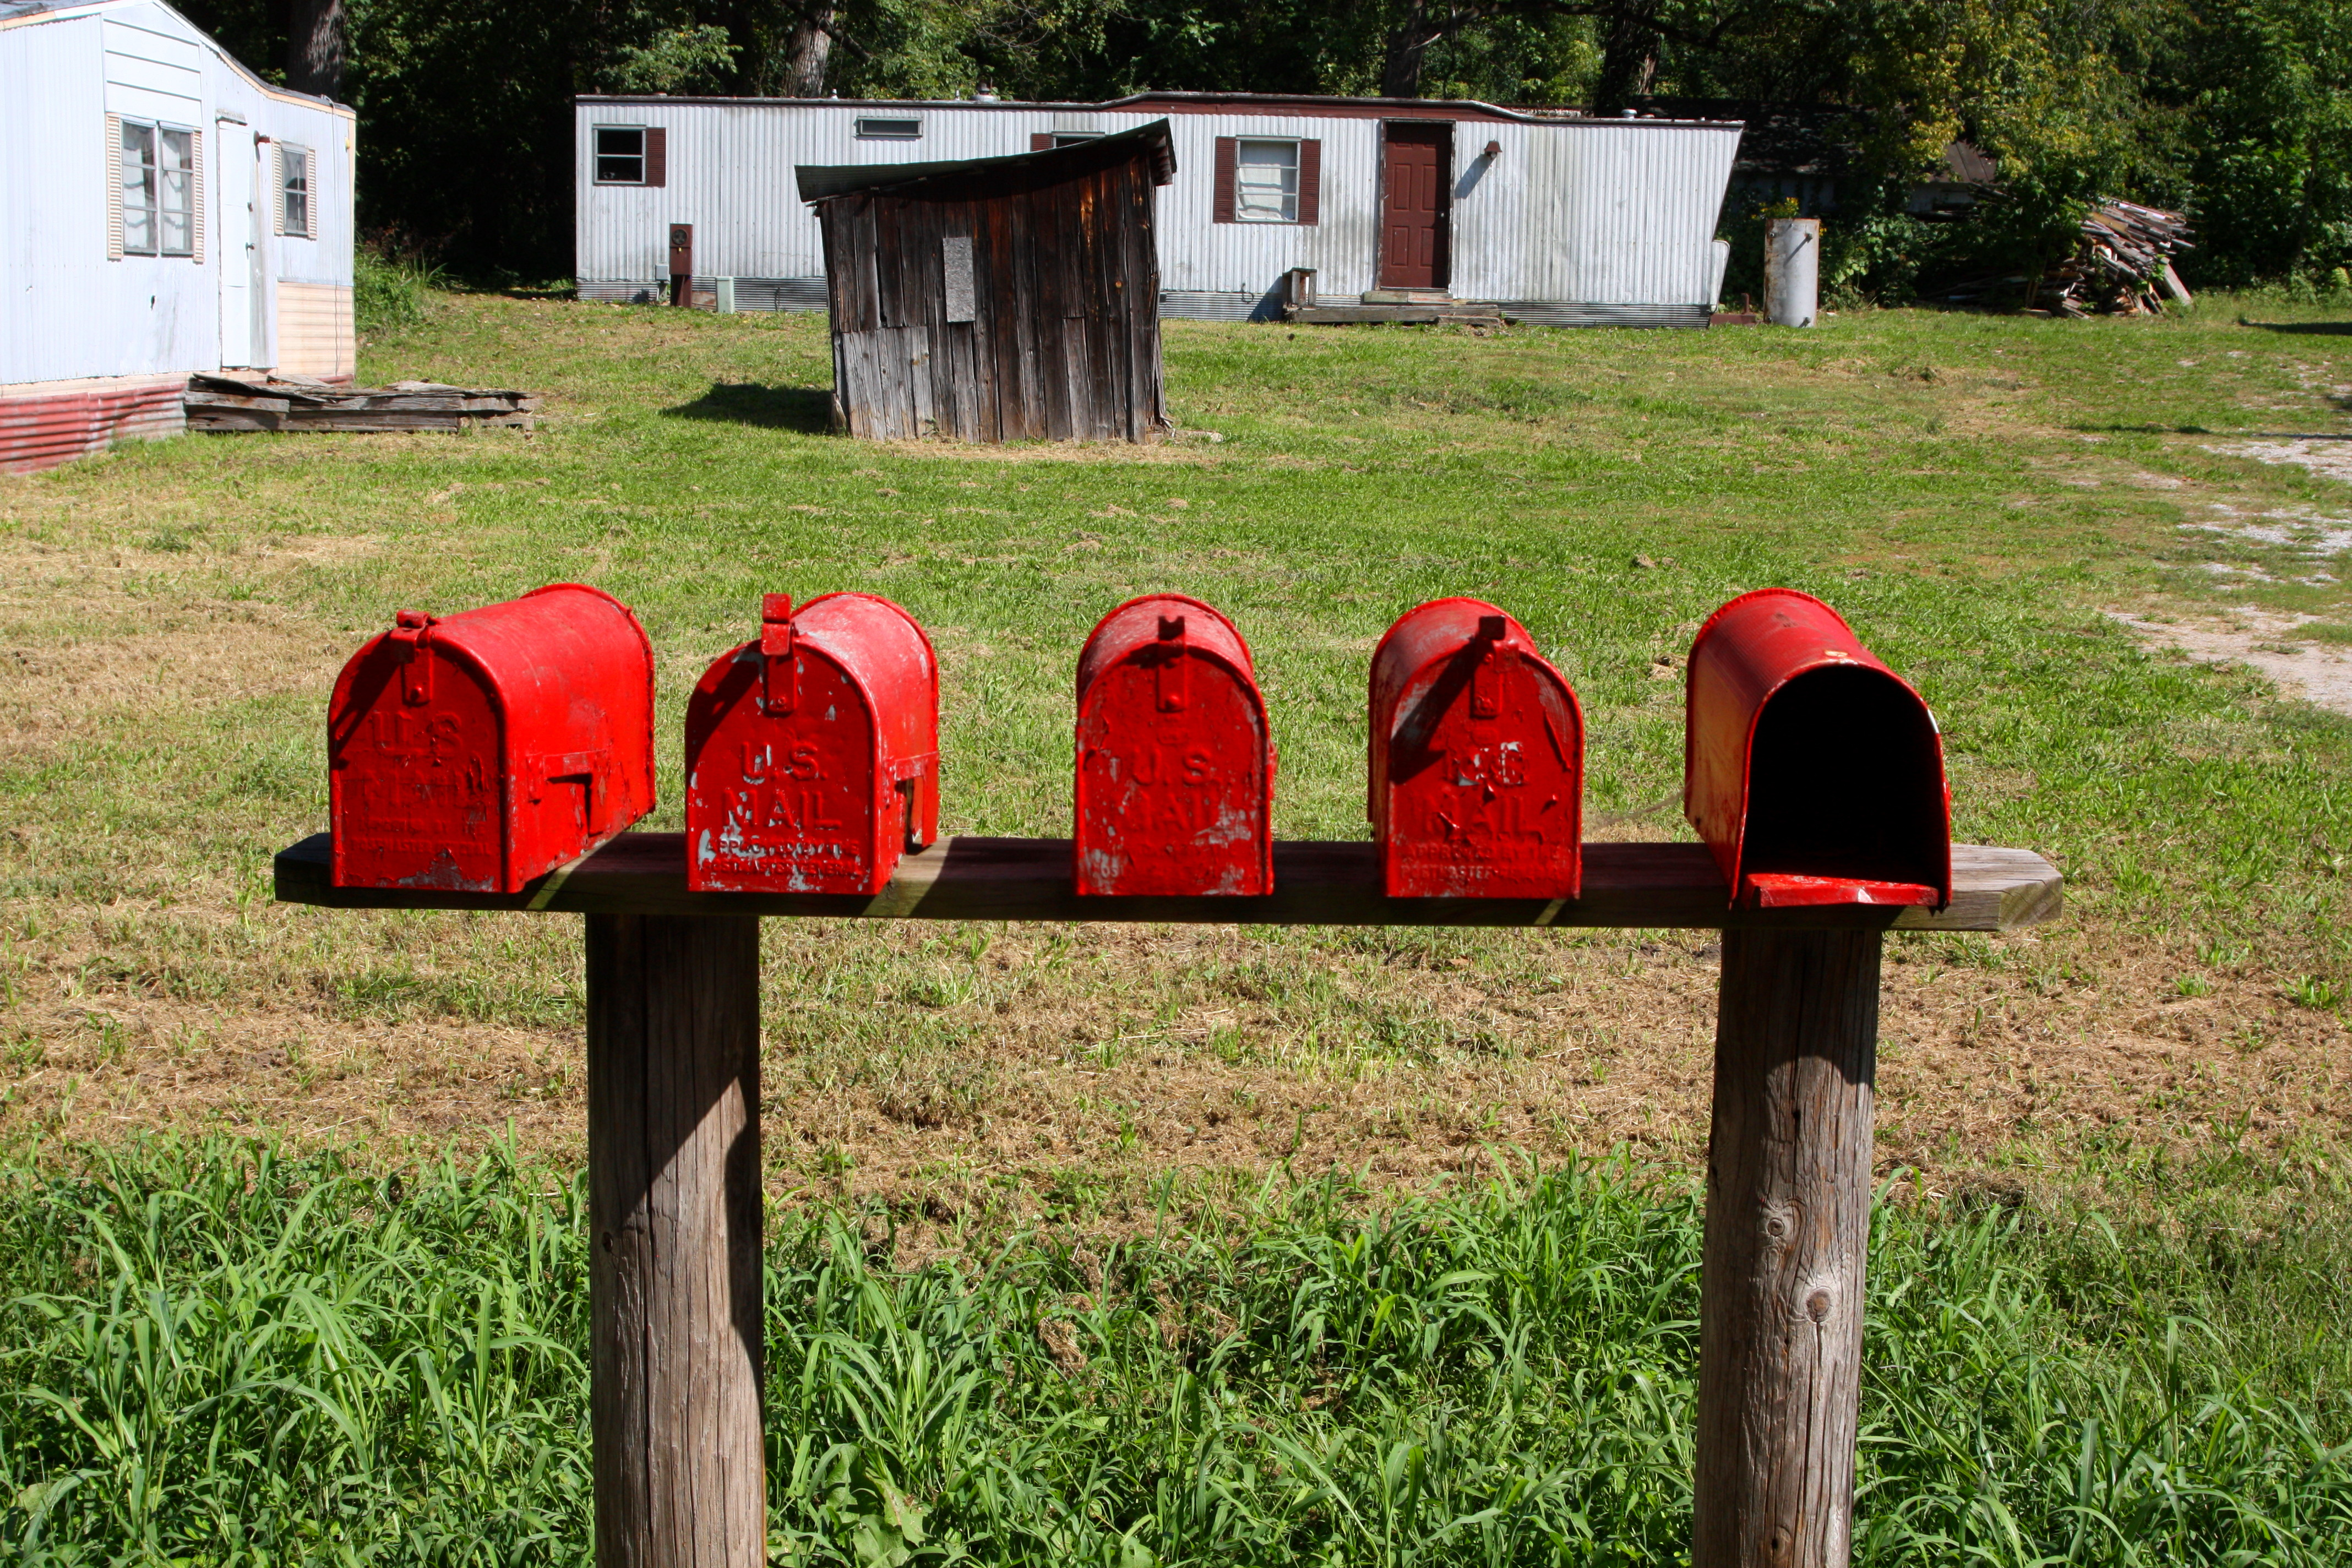 photo of five red mailboxes with trailers in background